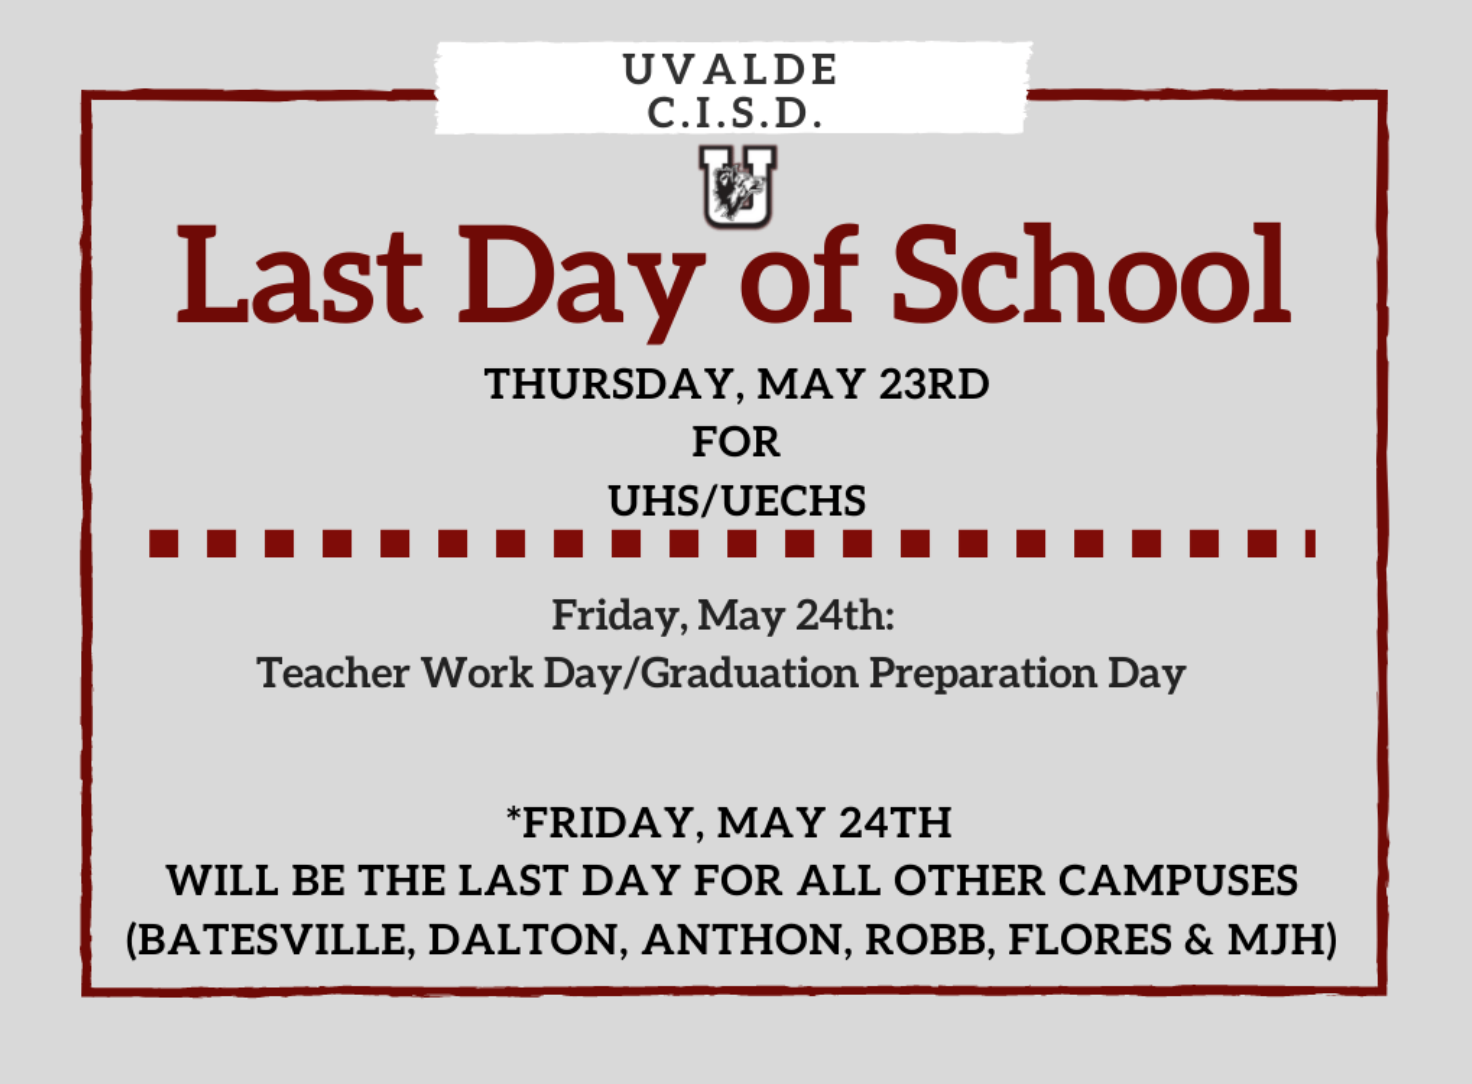 UCISD Last Day of School Information